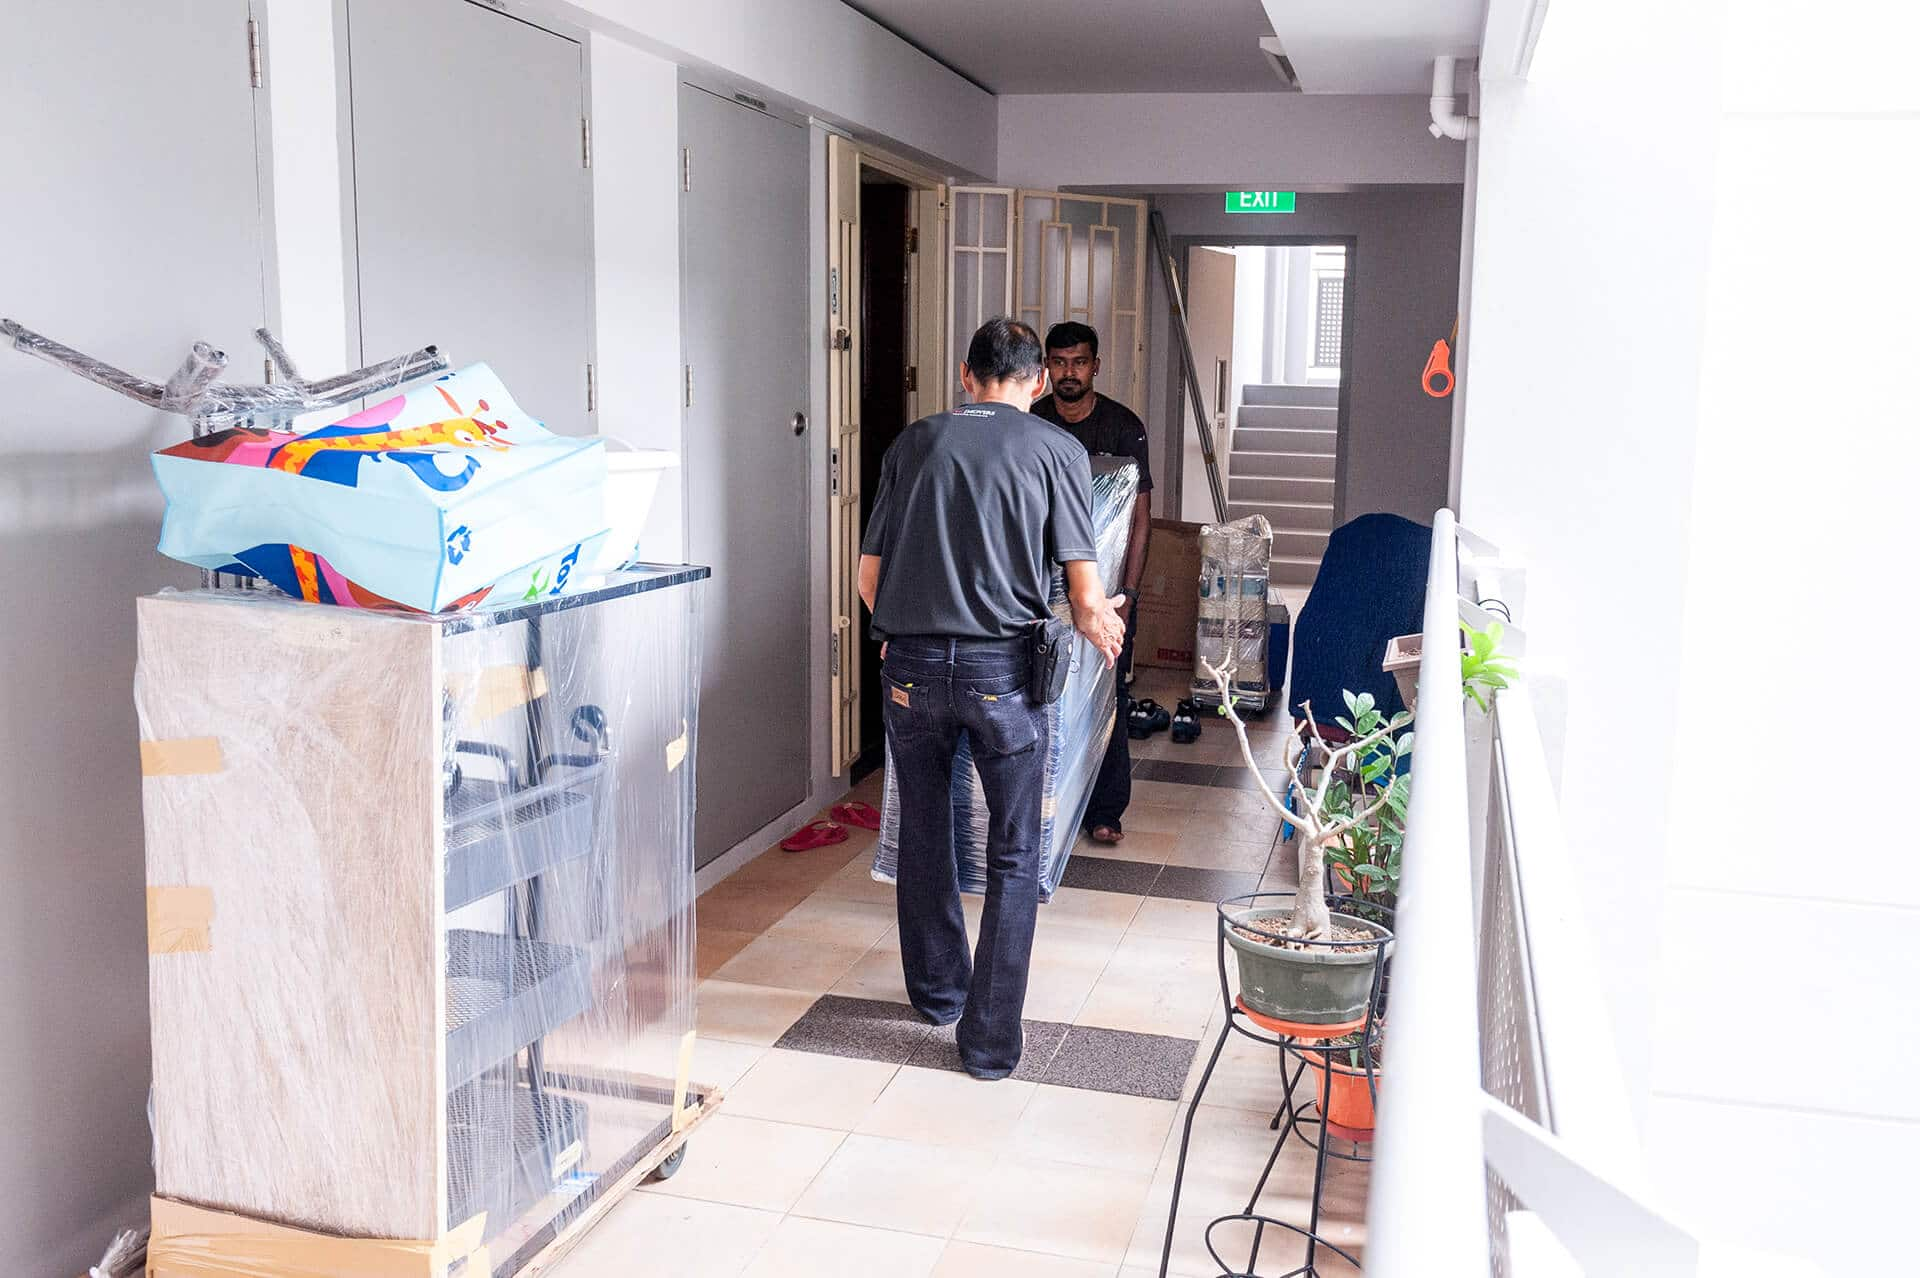 CYC Crew Carrying Furniture Along Corridors of HDB